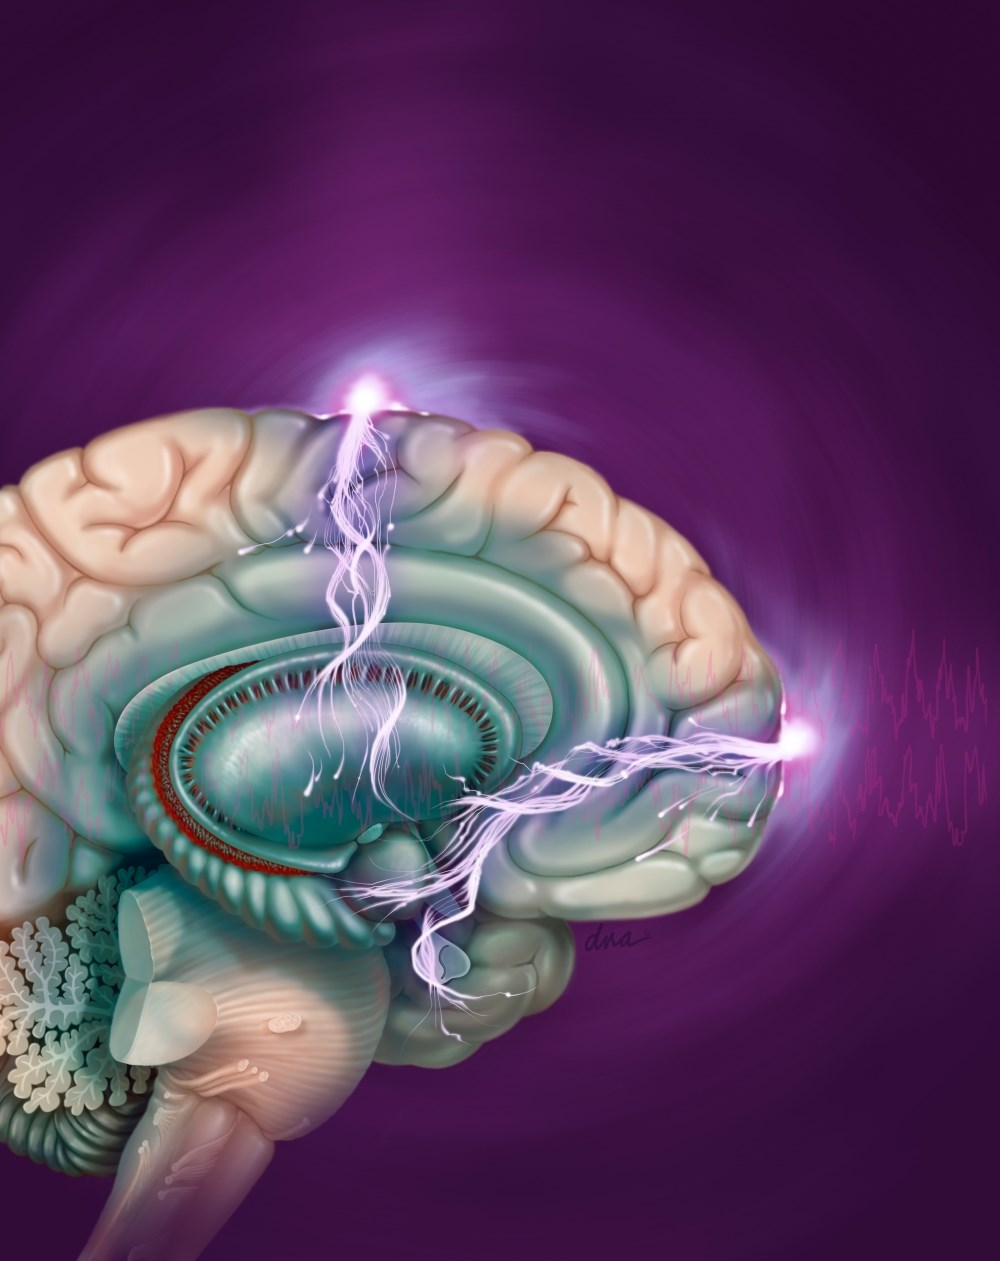 Schizophrenia Treatment Can Benefit From Electroconvulsive Therapy